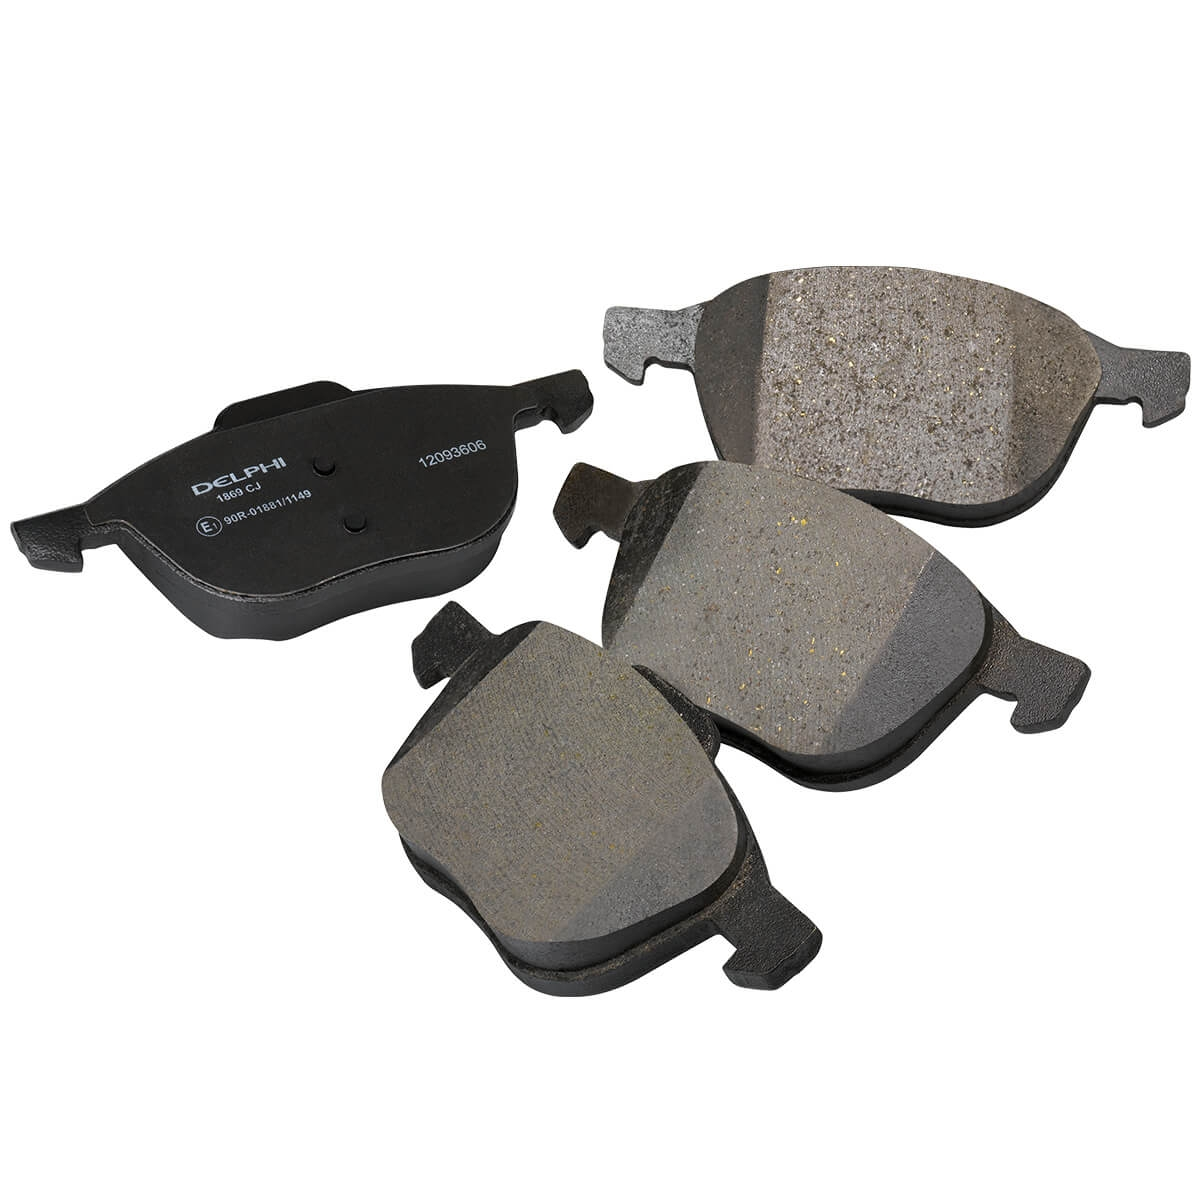 AUDI RSQ3 Brake Pad Set